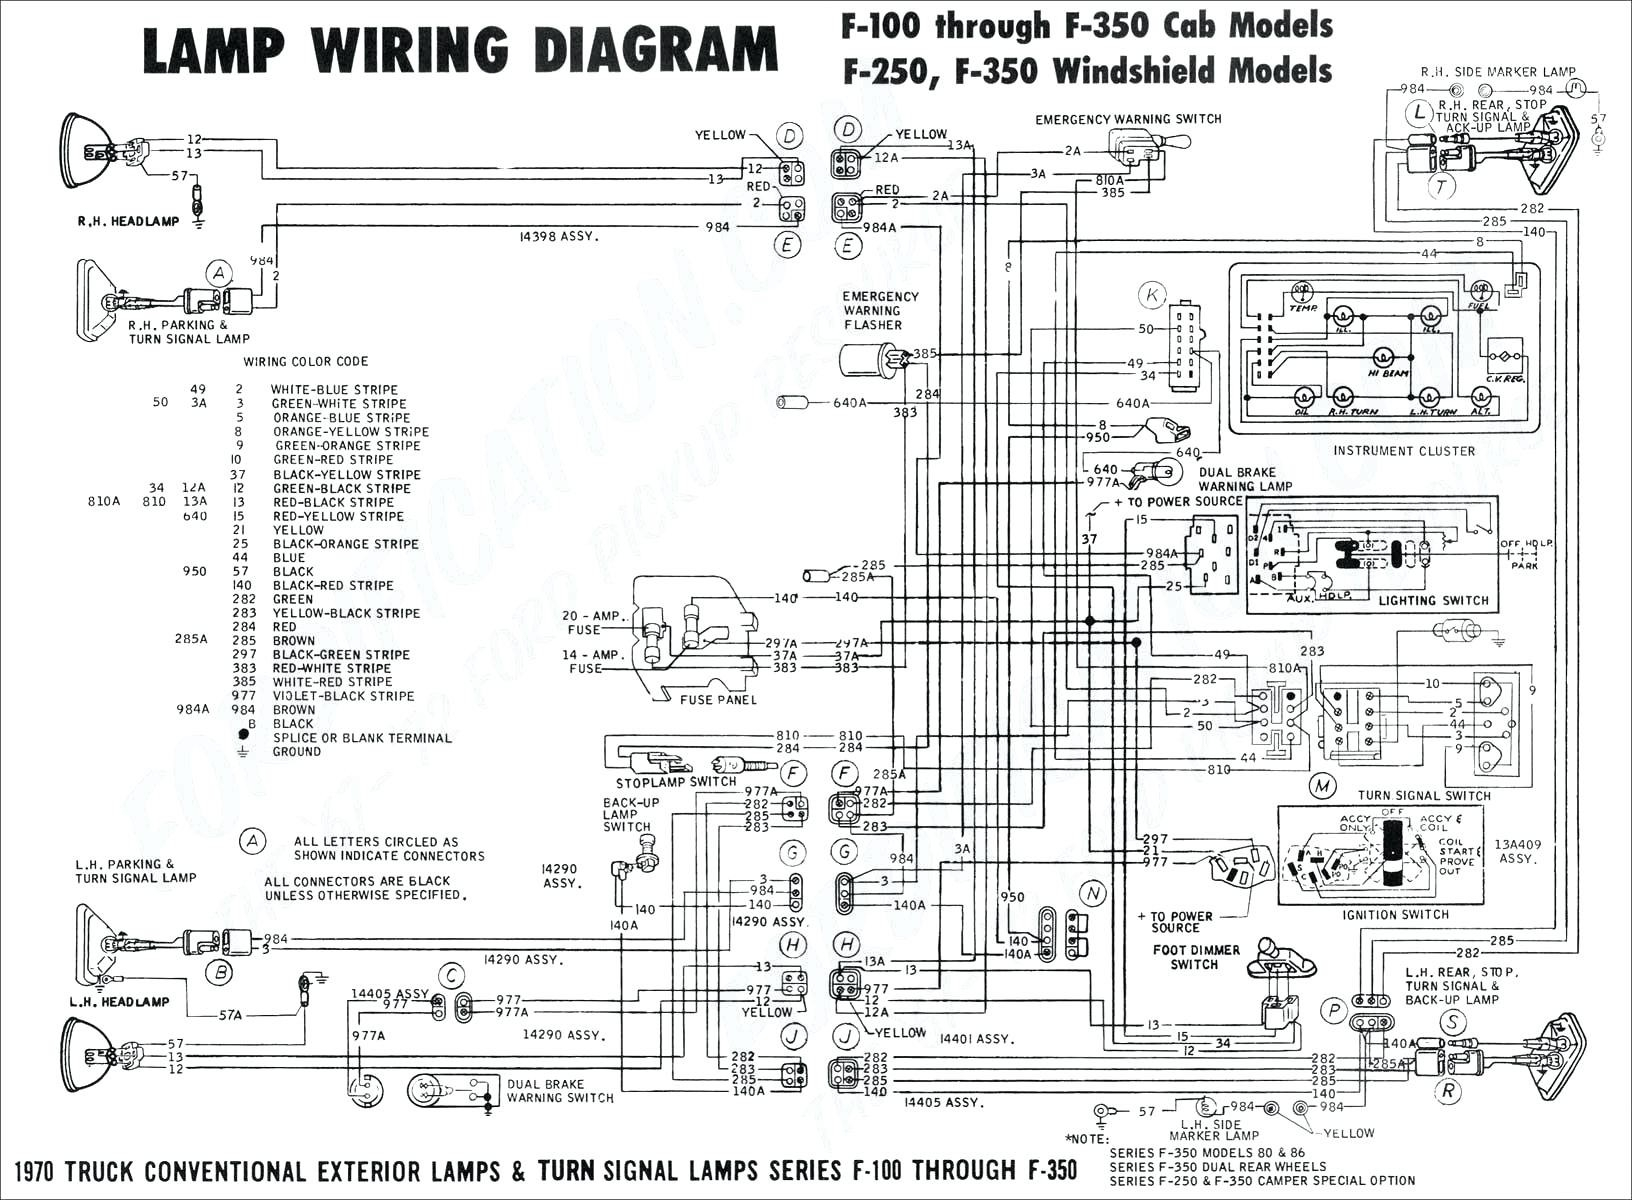 1997 ford f150 spark plug wiring diagram Collection-Stop Turn Tail Light Wiring Diagram Beautiful 1979 ford F150 Tail Attractive 1997 F150 Wiring 12-e